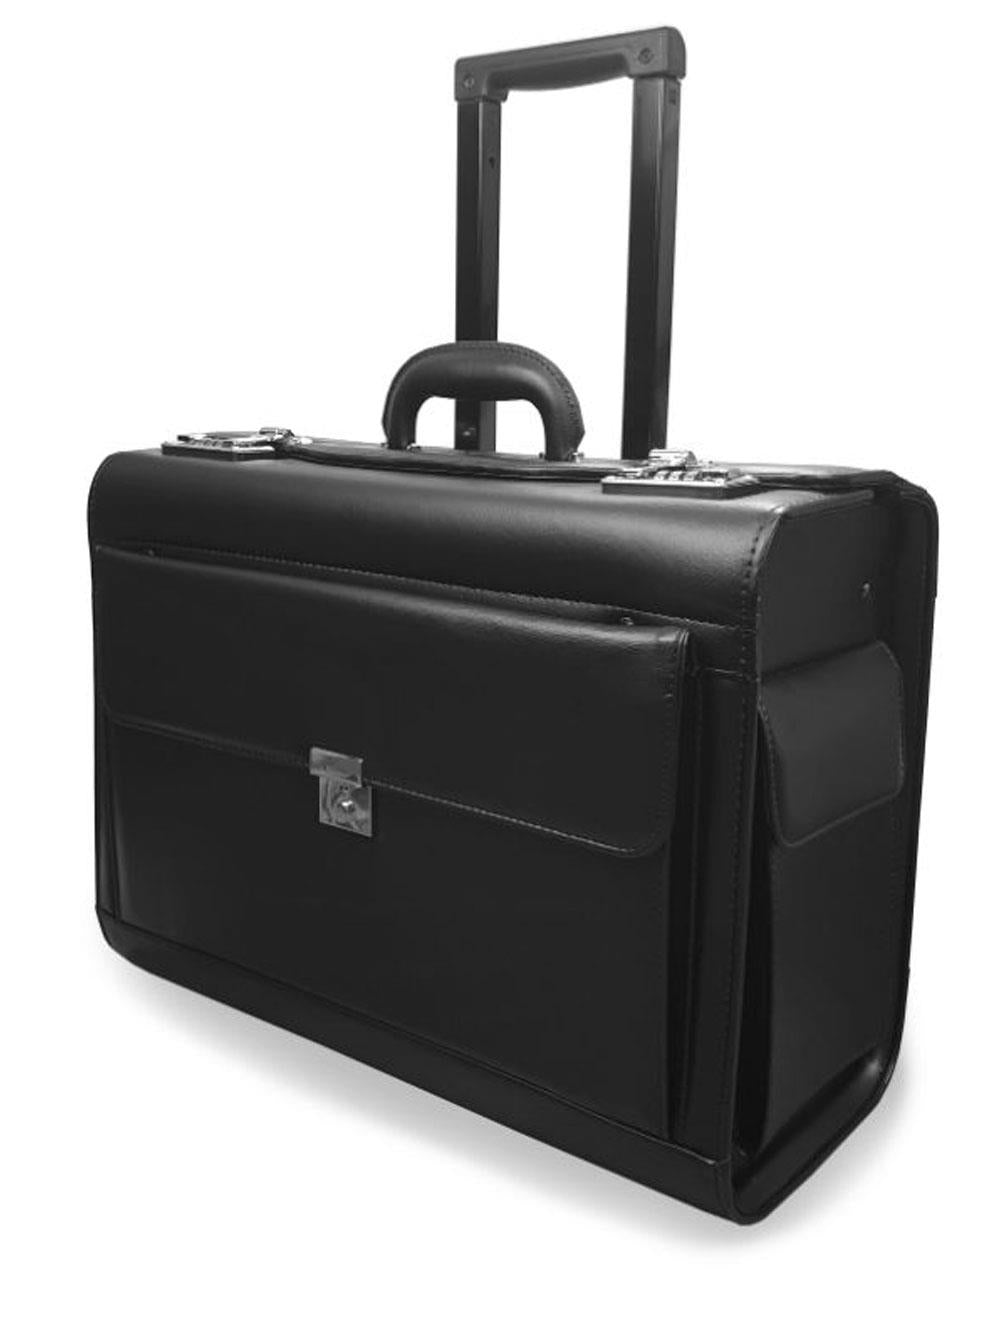 Pilot Briefcase Black RLPC9142K 2 Wheels